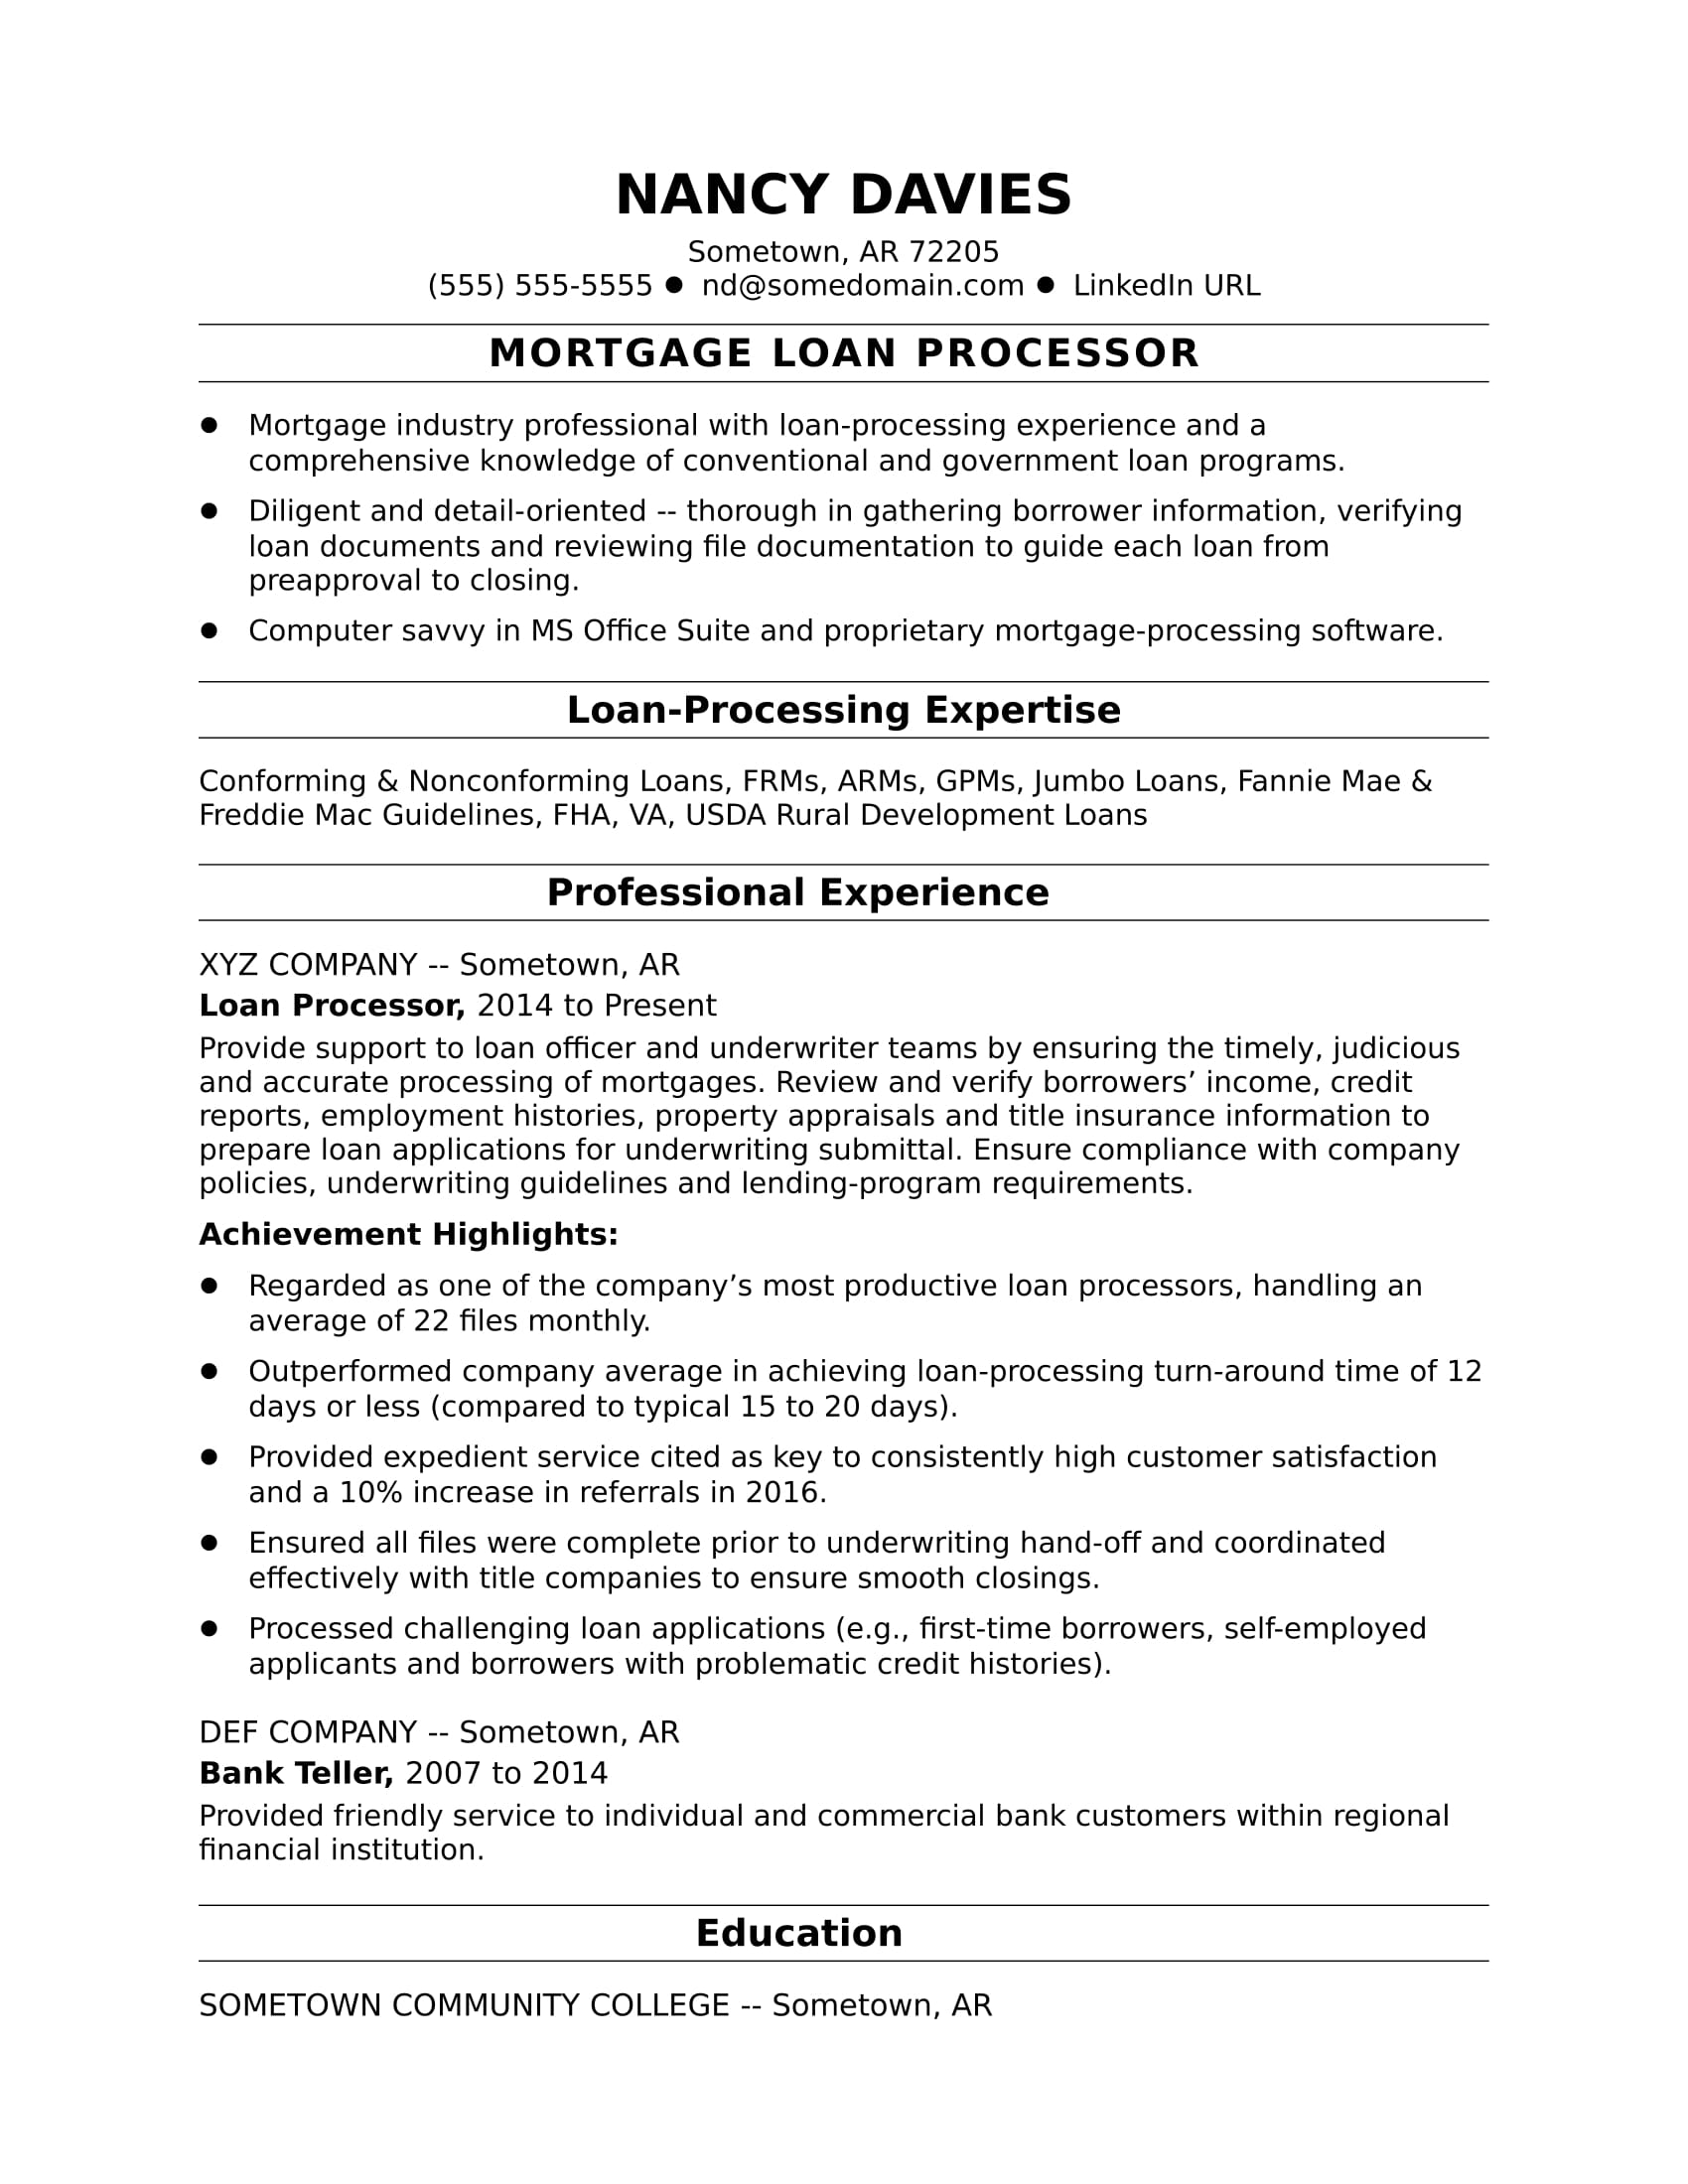 Mortgage Loan Processor Resume Sample Monster Com